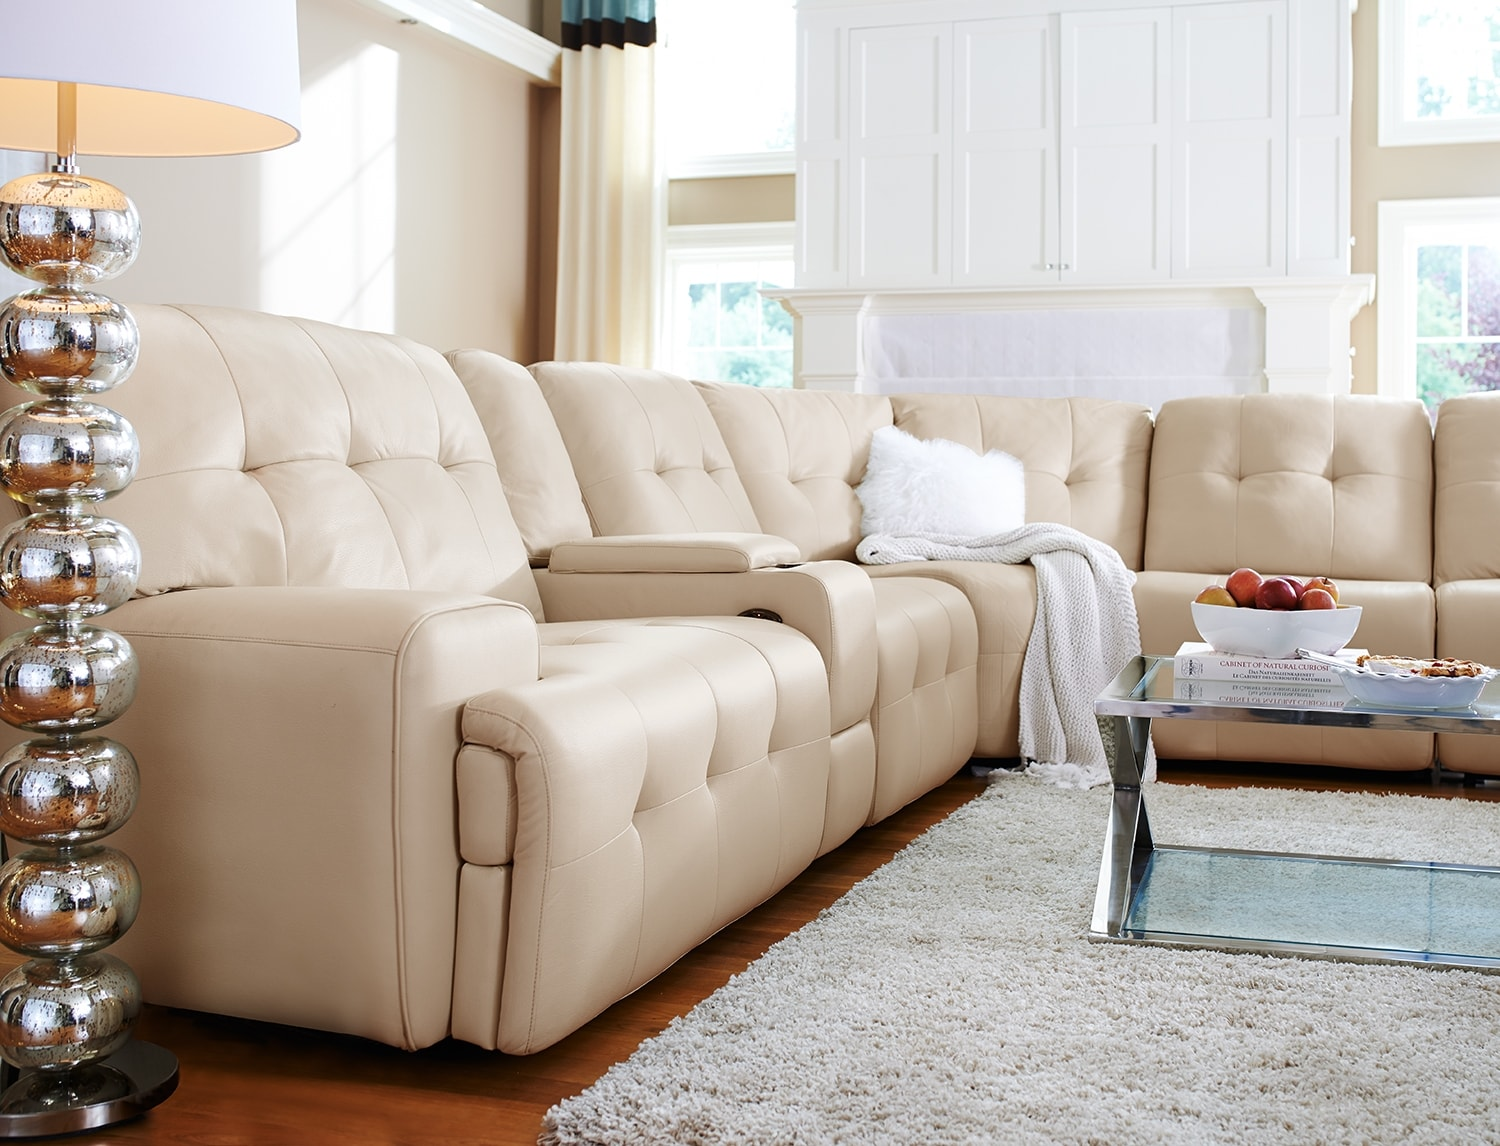 Sofa Vs Sectional What S Right For You Furnitures